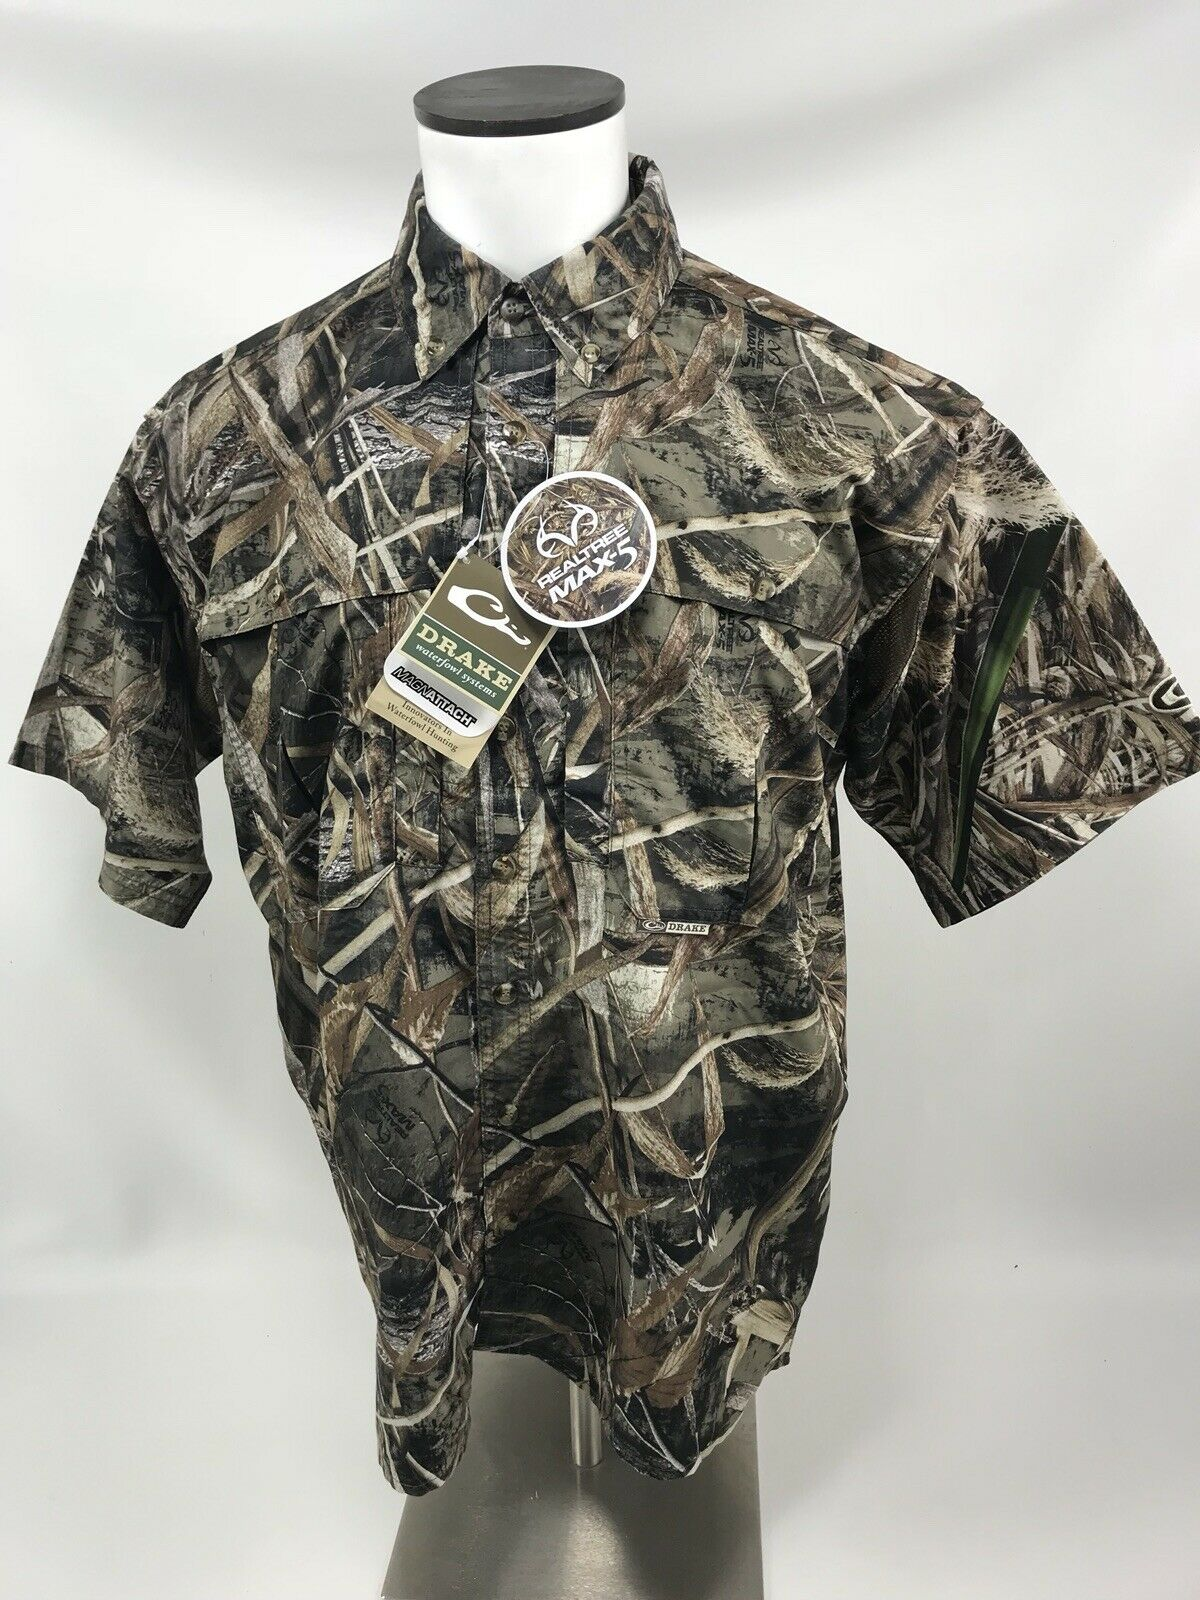 Drake Waterfowl DW2600-015-2 Wingshooter Mens Max-5  Camo Medium S S Shirt  in stadium promotions